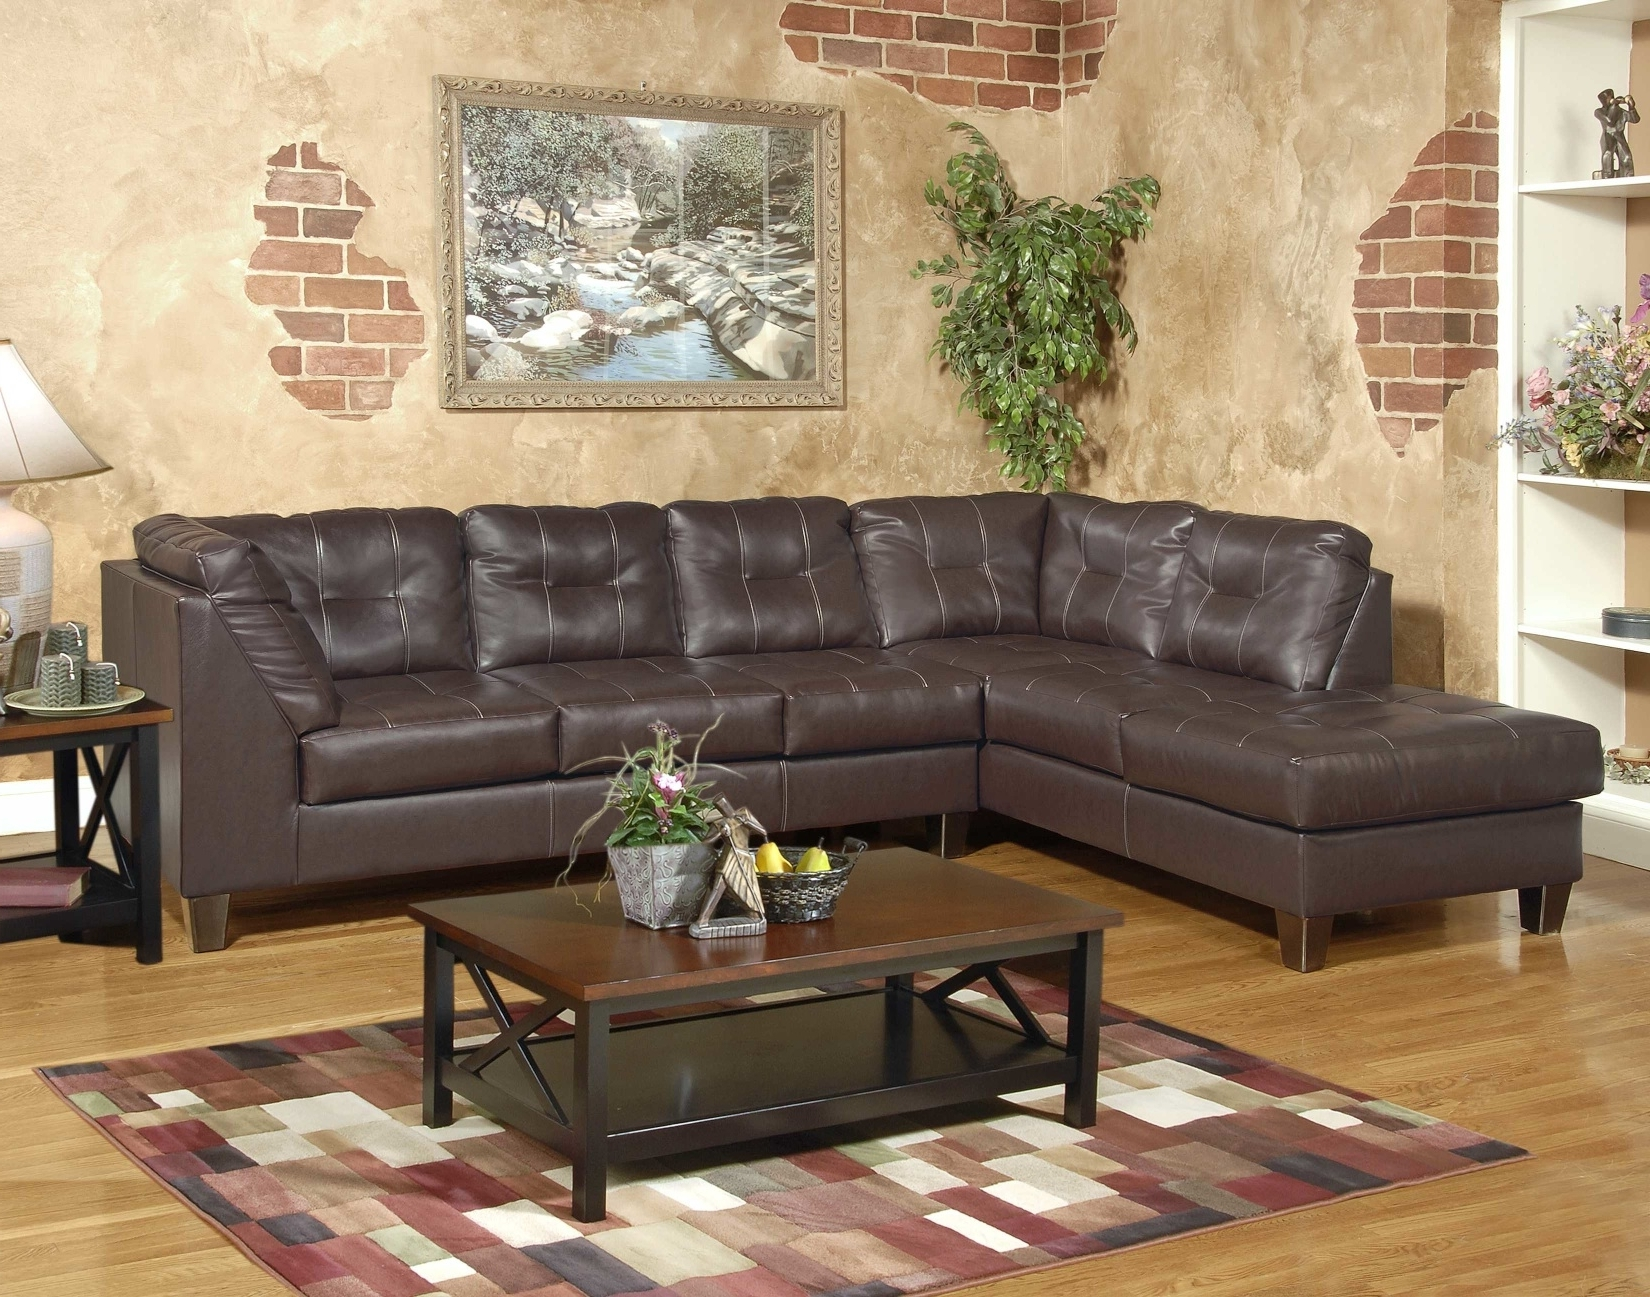 Discount Furniture And Mattresses – Tallahassee Furniture Direct For Most Recently Released Tallahassee Sectional Sofas (View 8 of 20)